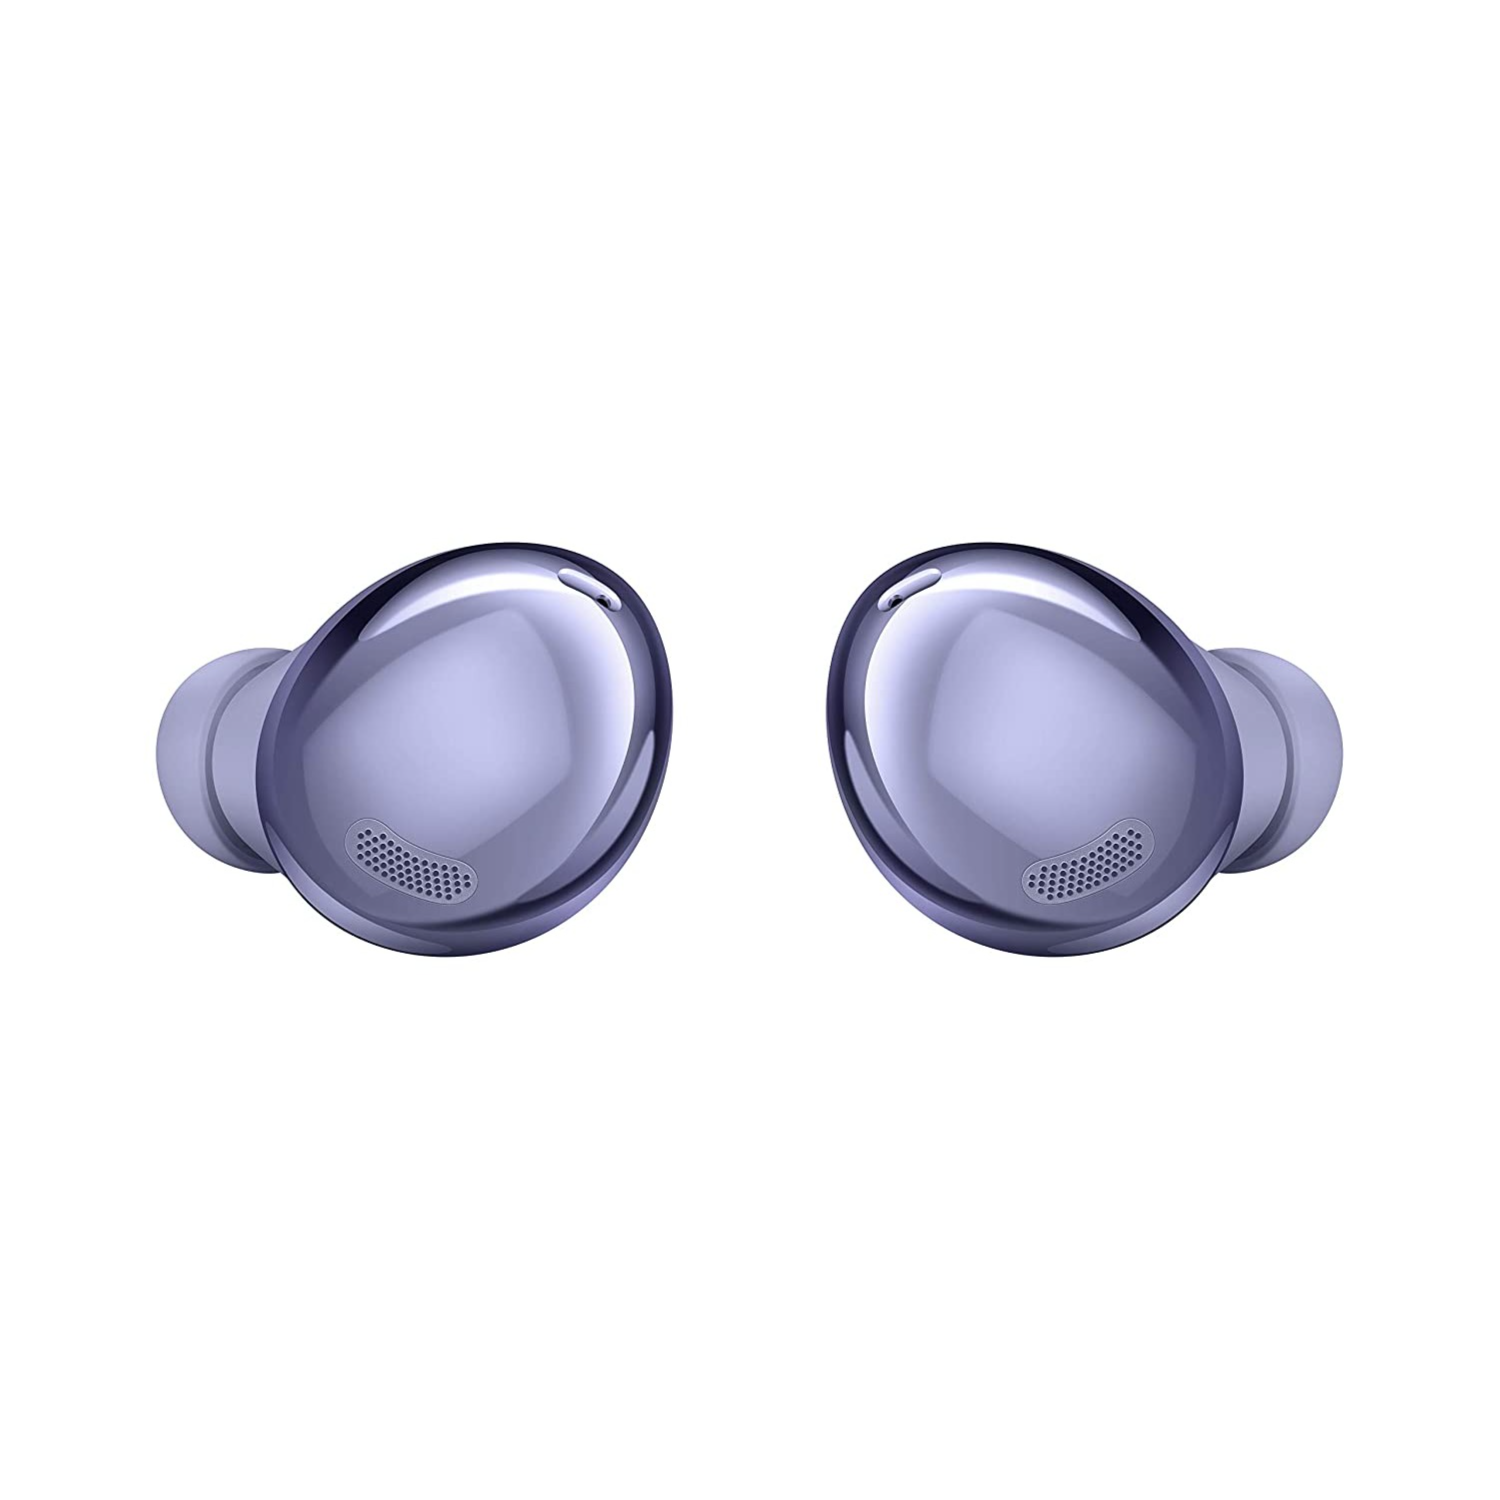 Samsung Galaxy Ear Buds Pro, Violet : Amazon.in: Electronics